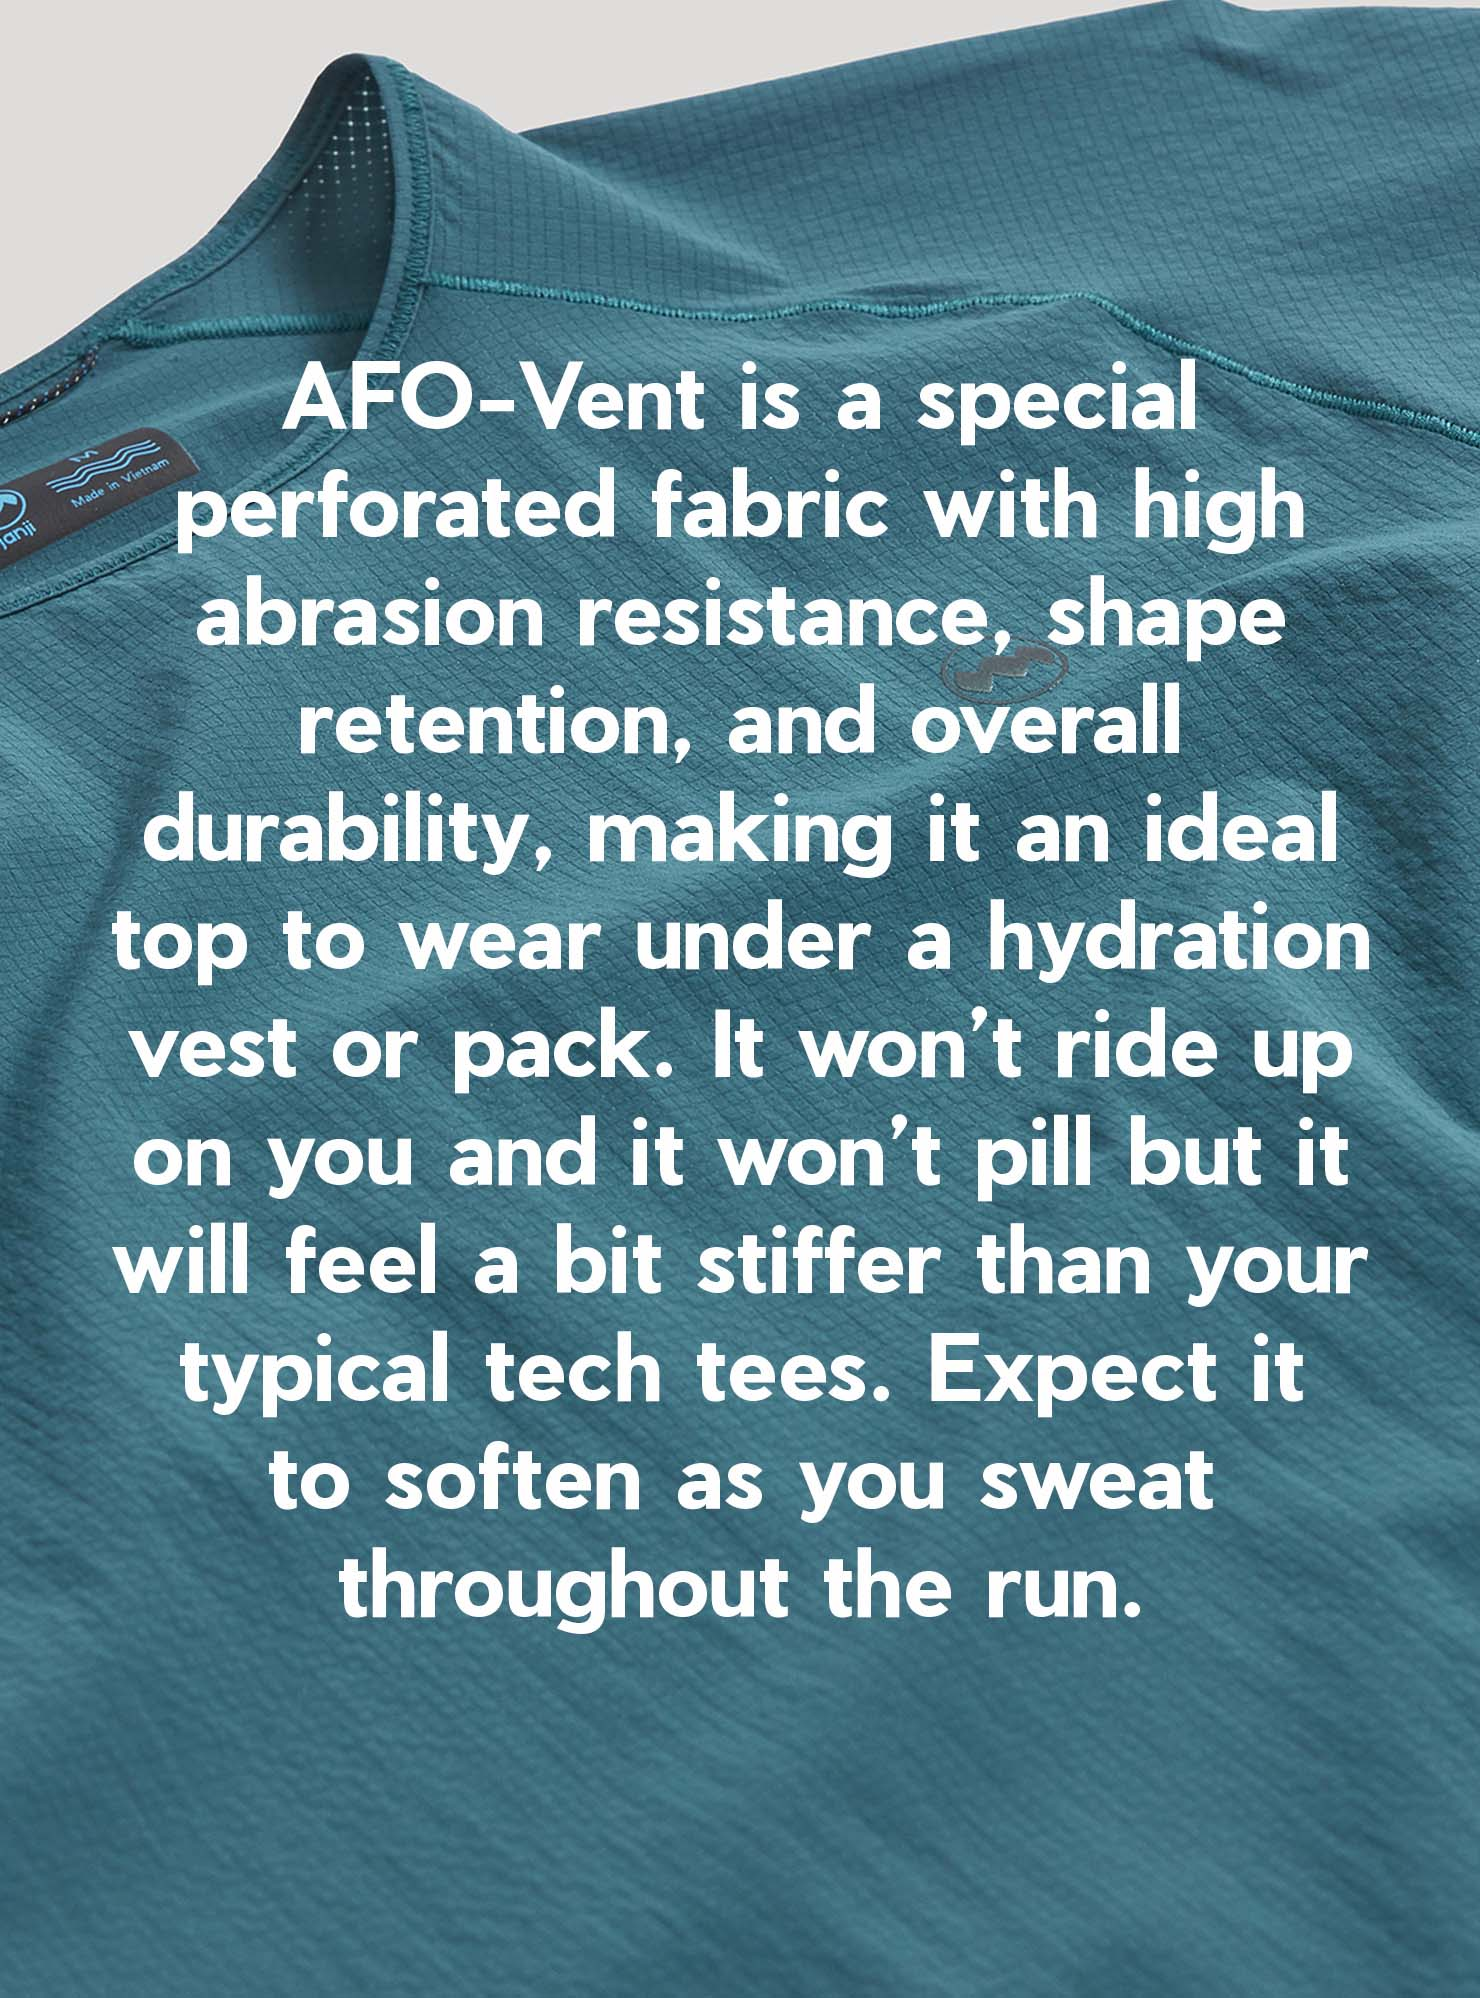 W's AFO-Vent SS Tee